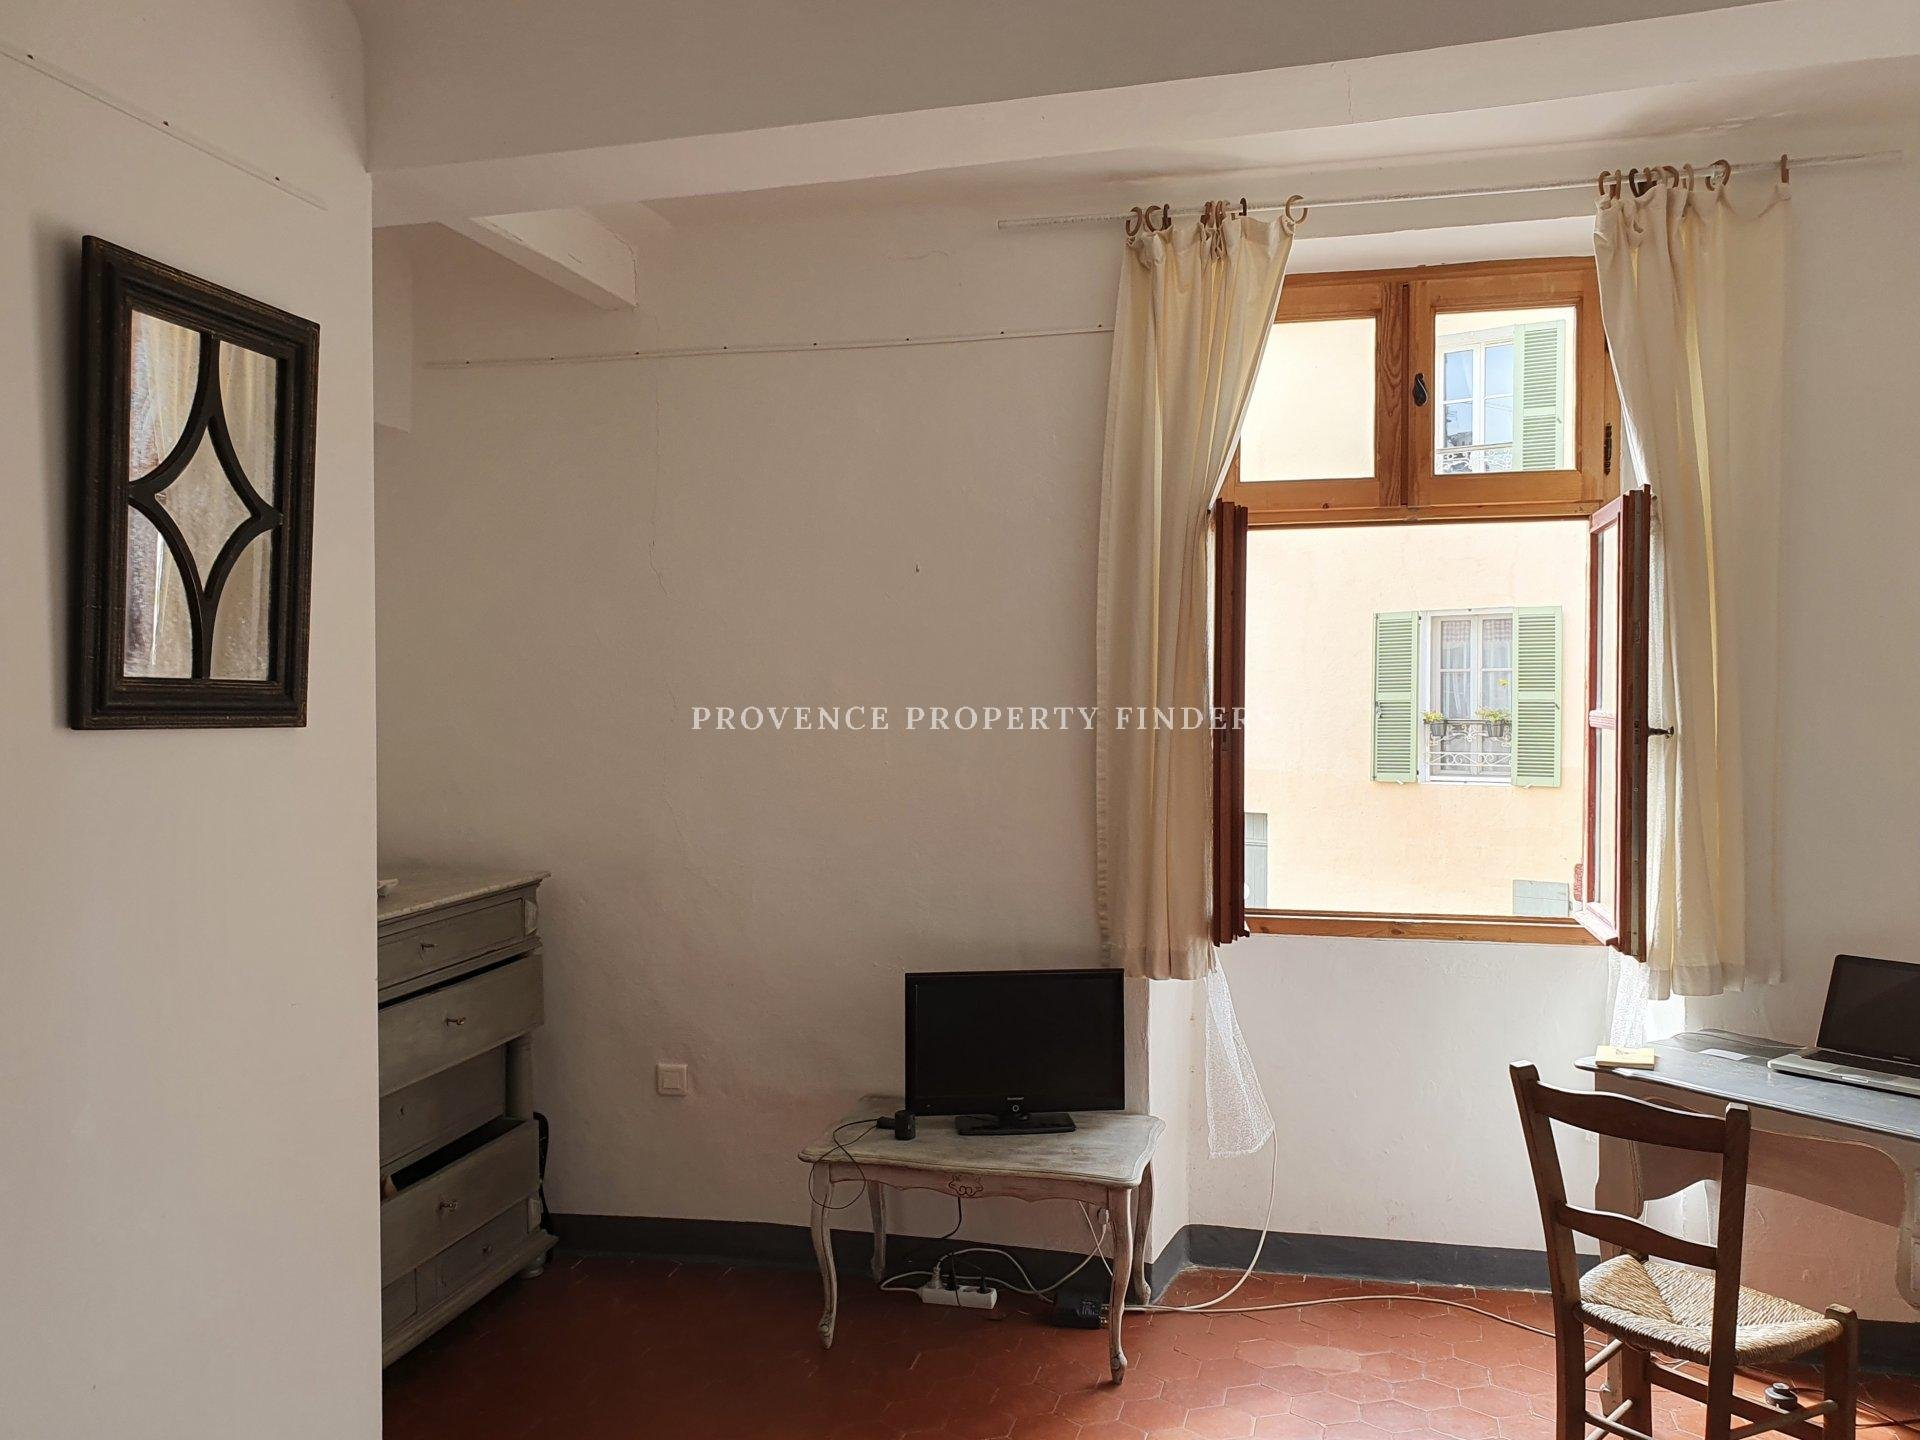 Village house for sale in the heart of Tourtour village.